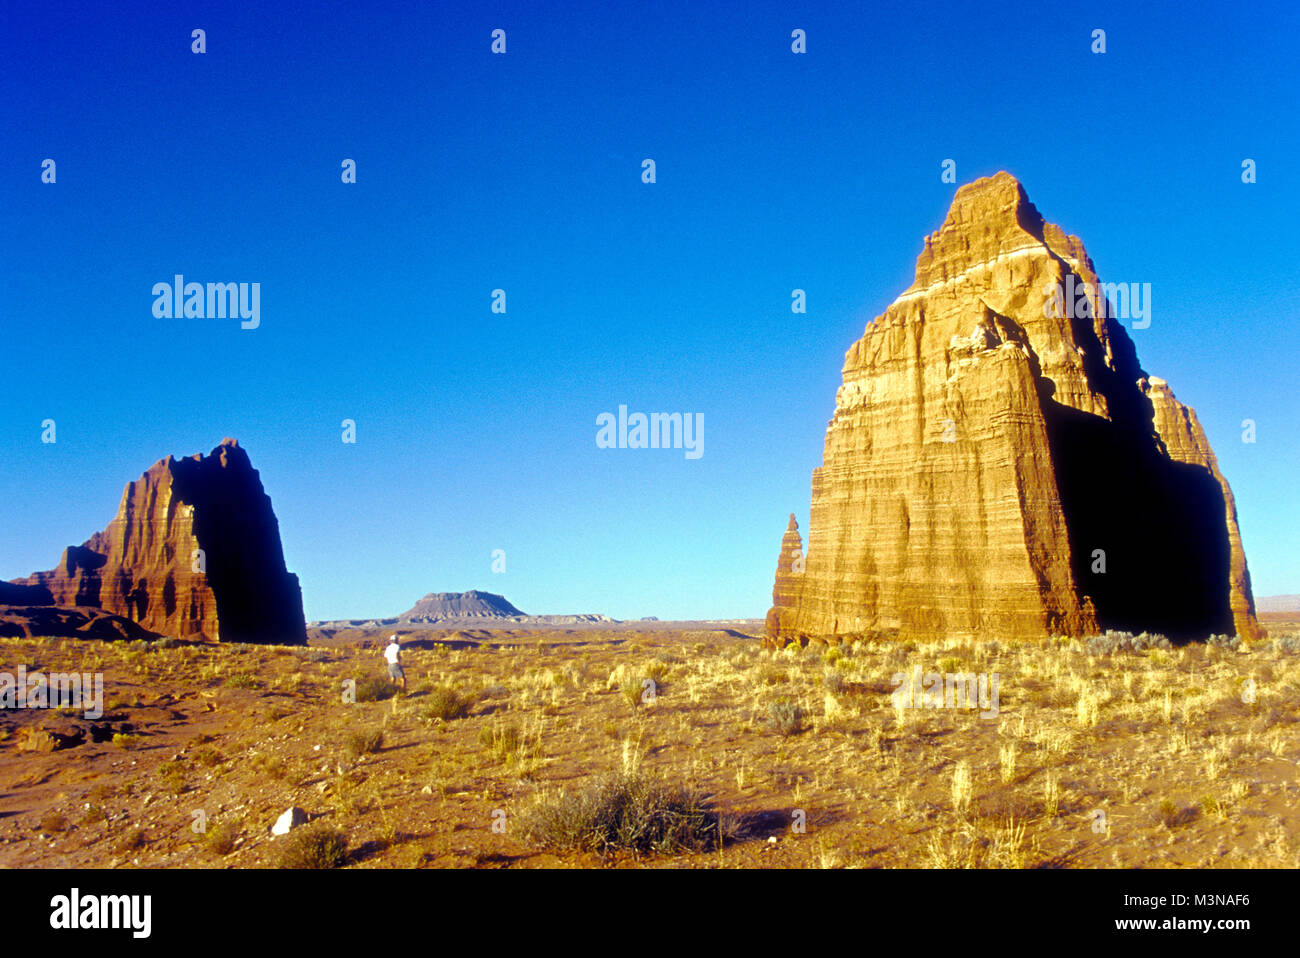 Temple of the Sun (L) and Temple of the Moon (R), monoliths in Cathedral Valley, Capitol Reef National Park, south - Stock Image